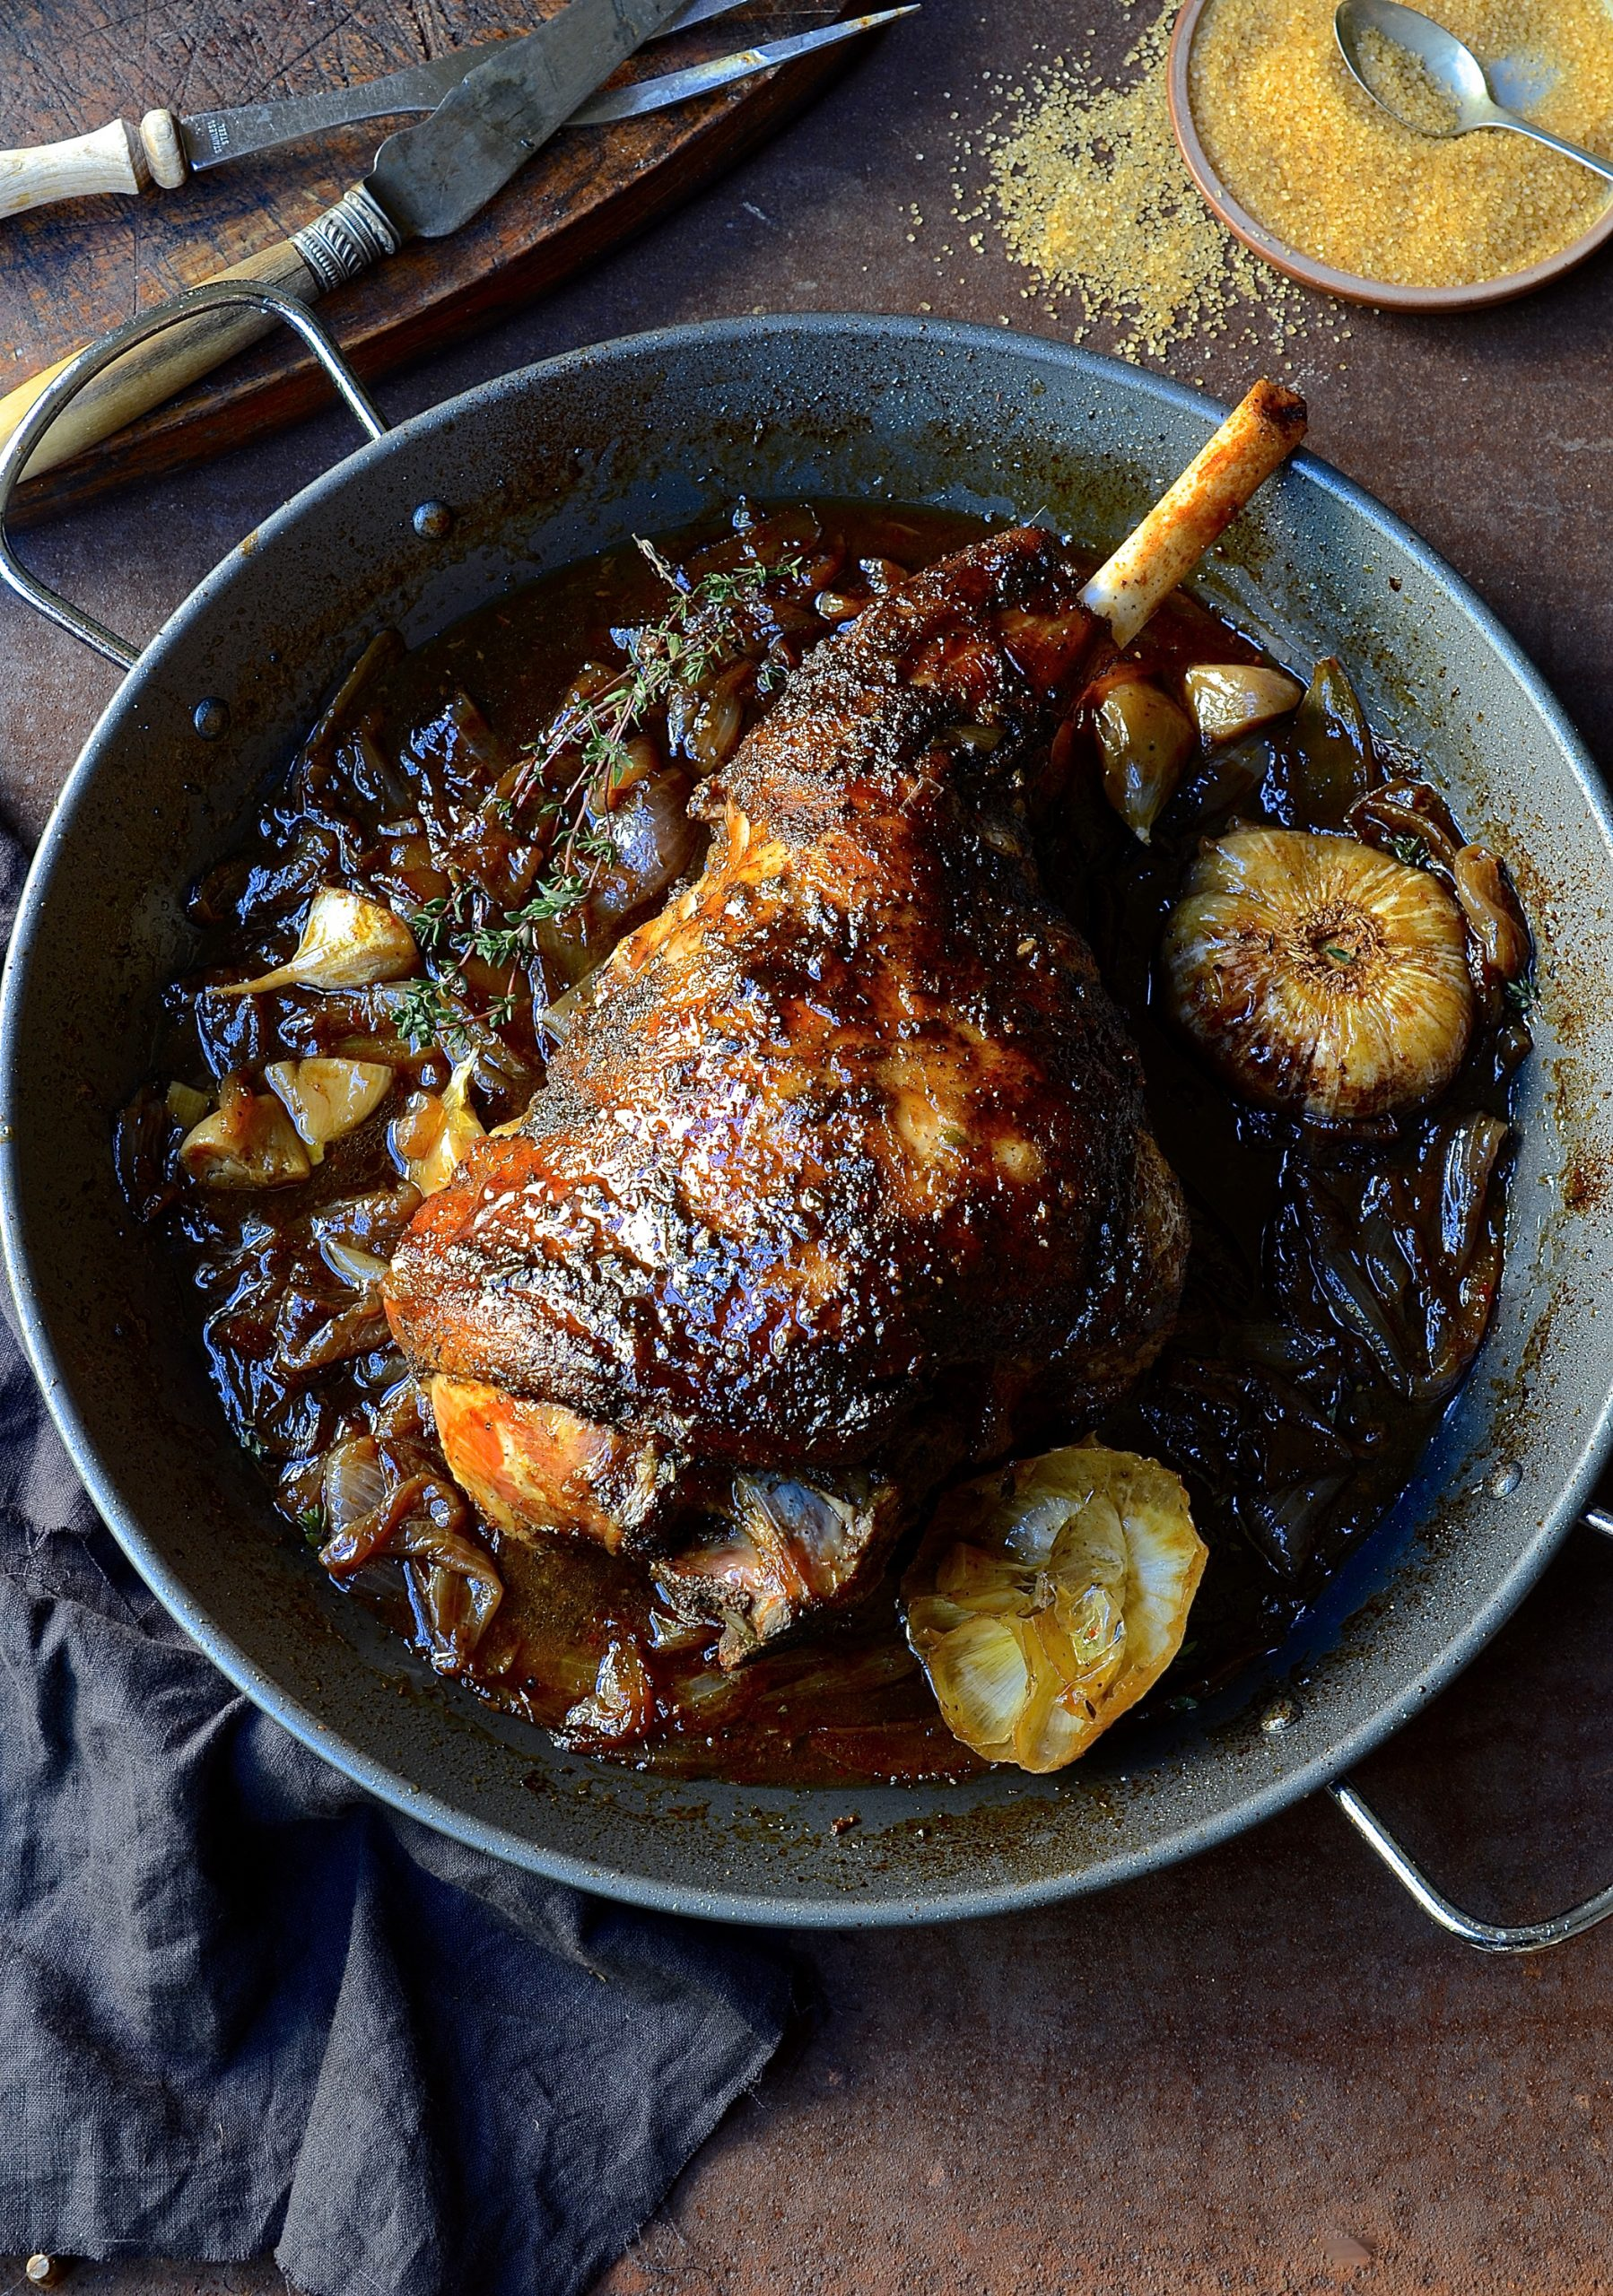 Roast leg of lamb with sweet onion marmalade